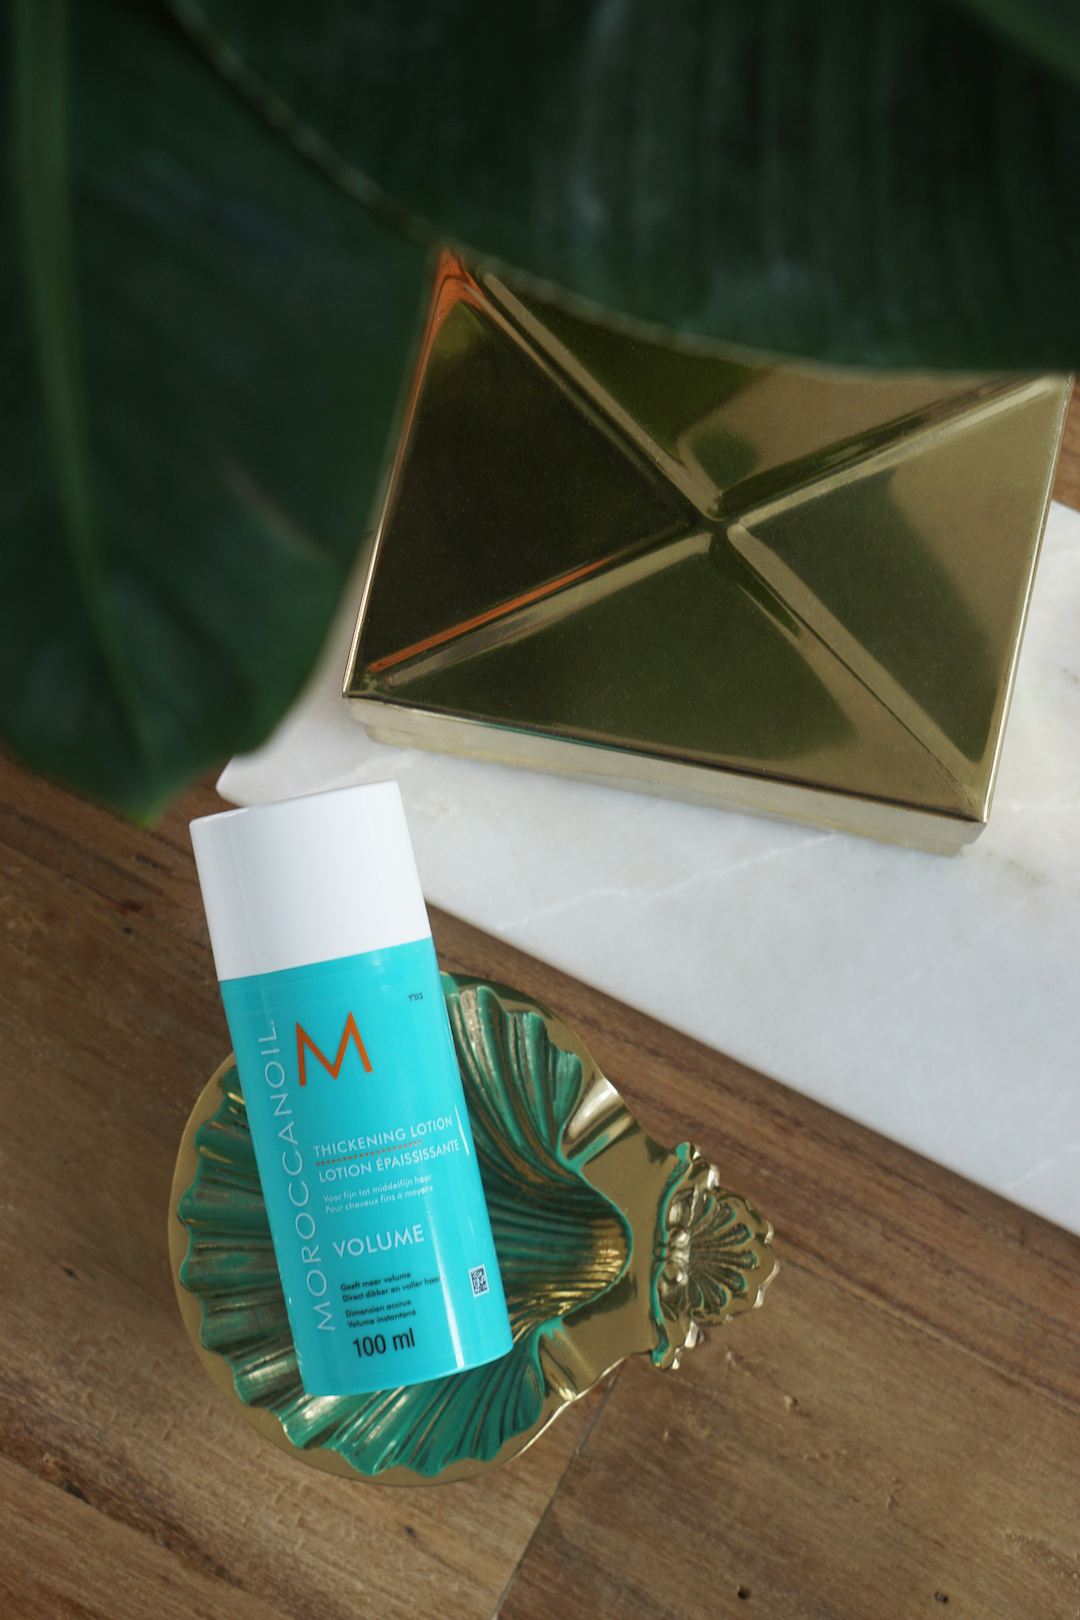 Moroccanoil Thickening lotion